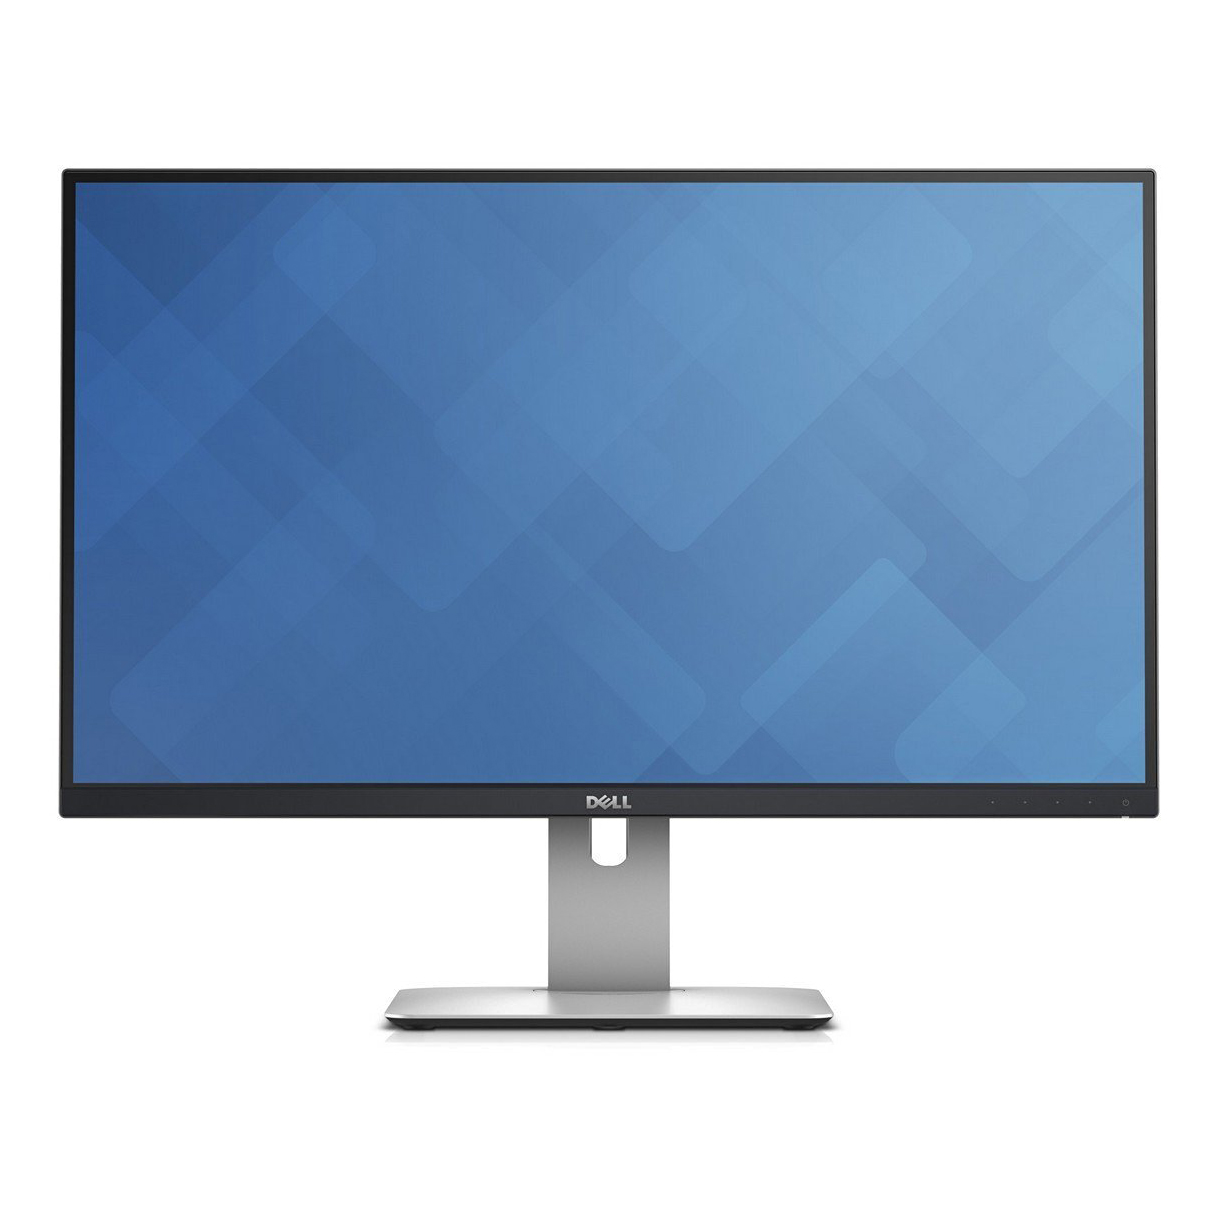 Dell_UltraSharp_U2715H_Monitor_210_ADSO_01